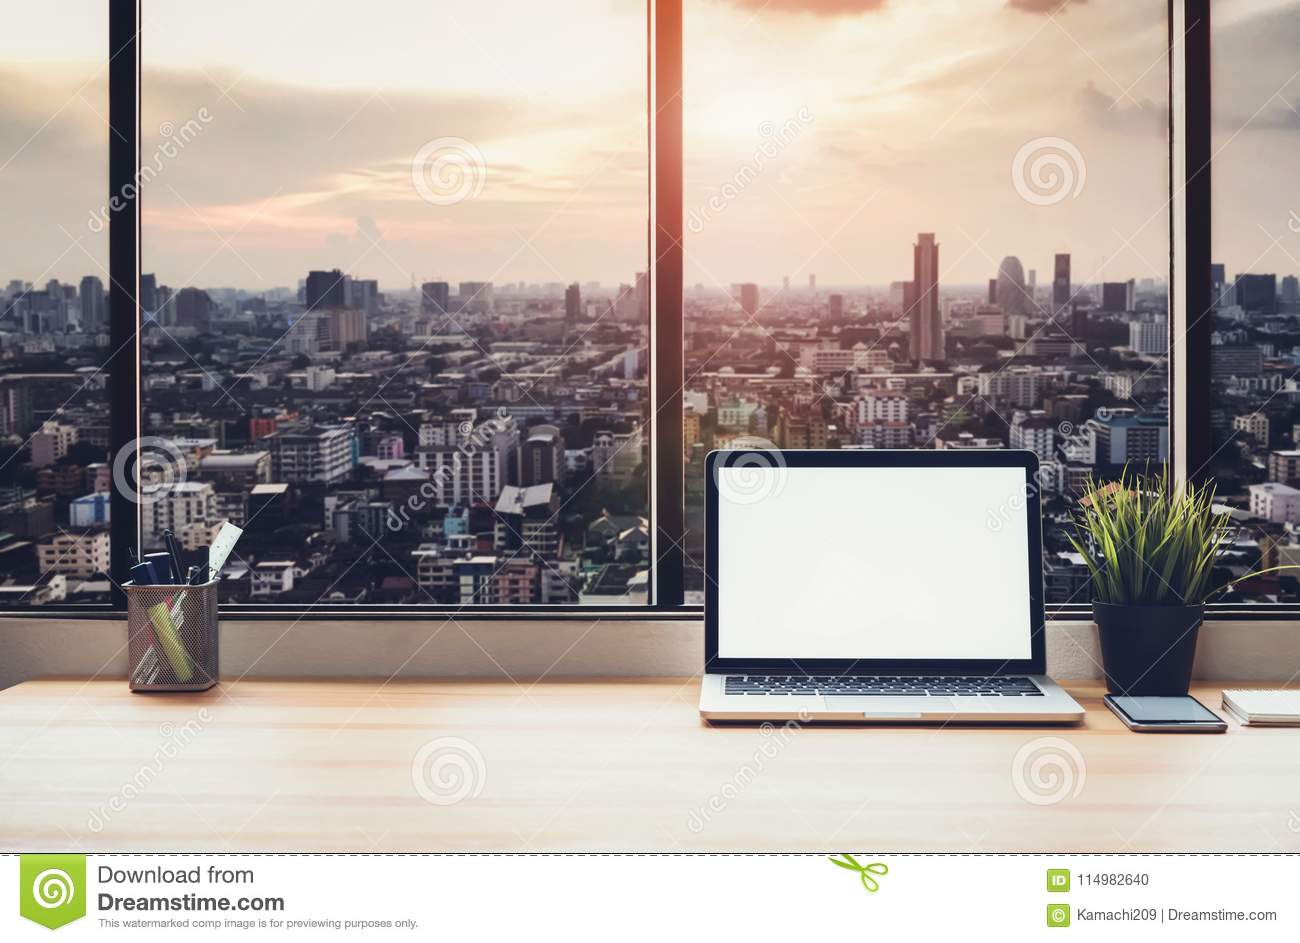 Laptop on table in office room on window city background, for graphics display montage.